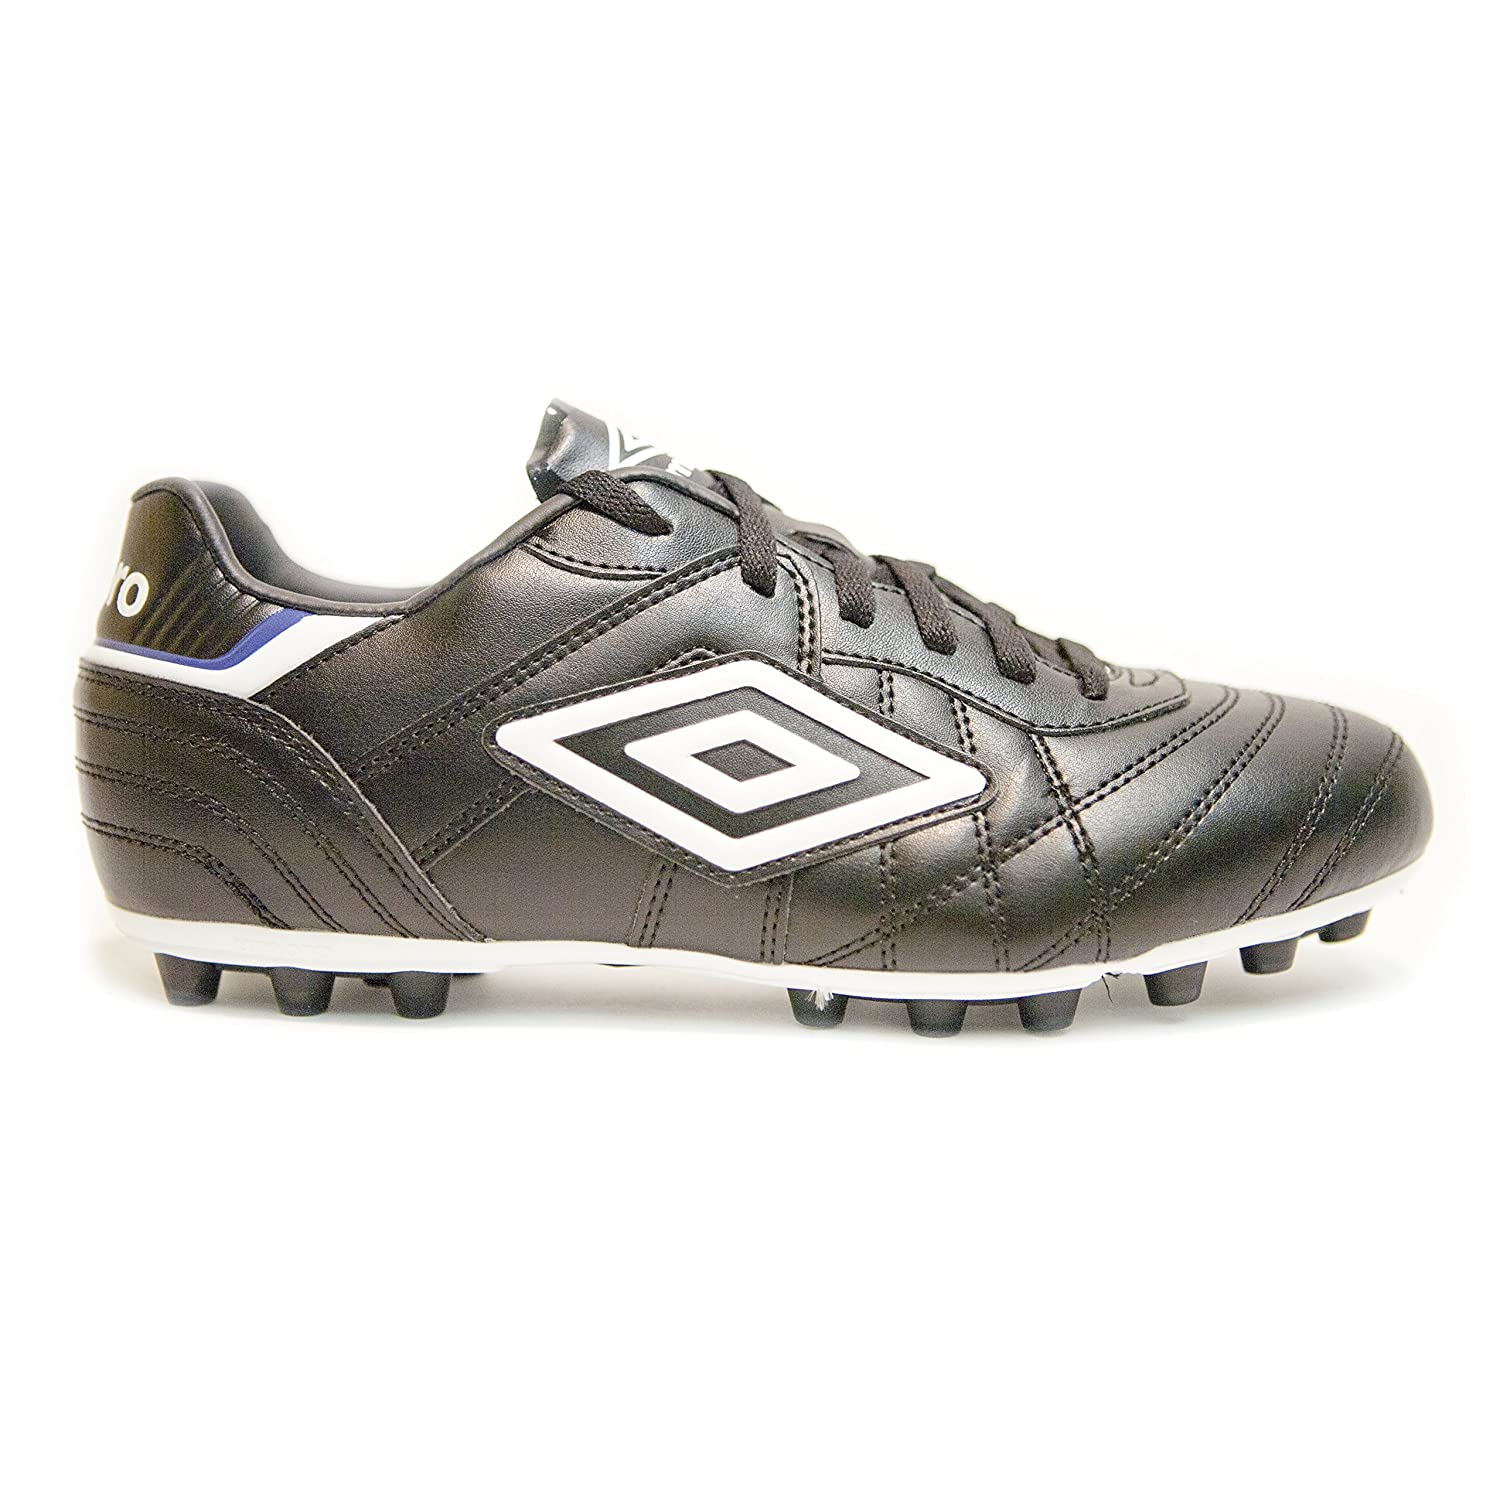 Umbro Speciali eternal club AG - 42